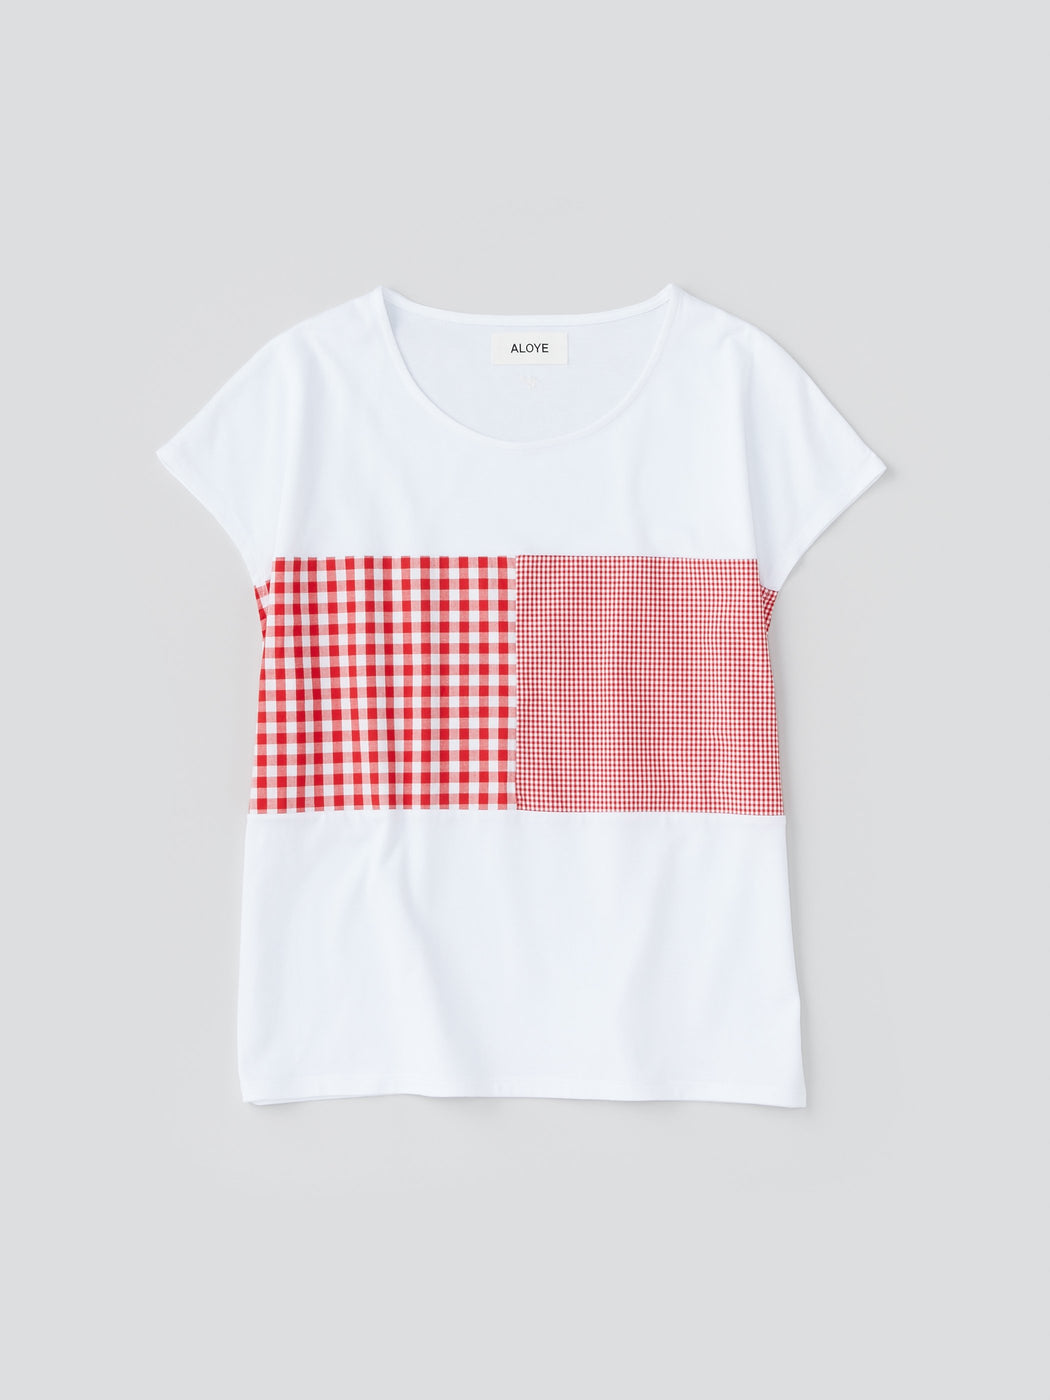 ALOYE Shirt Fabrics Women's Capped Sleeve T-shirt White-Red Gingham